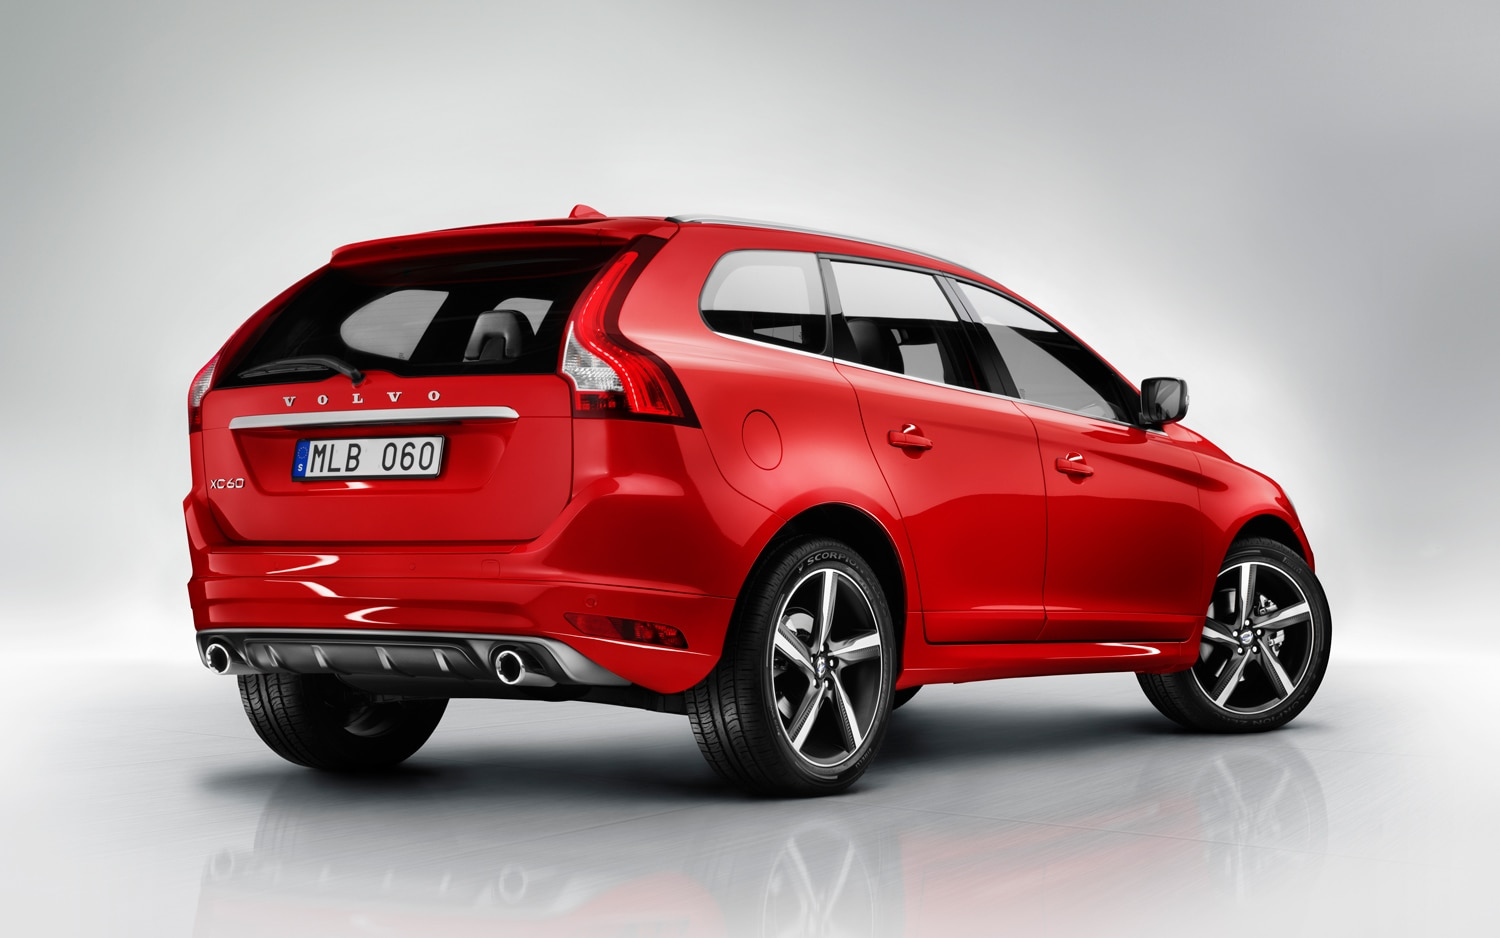 2014 Volvo XC60 R Design Rear1